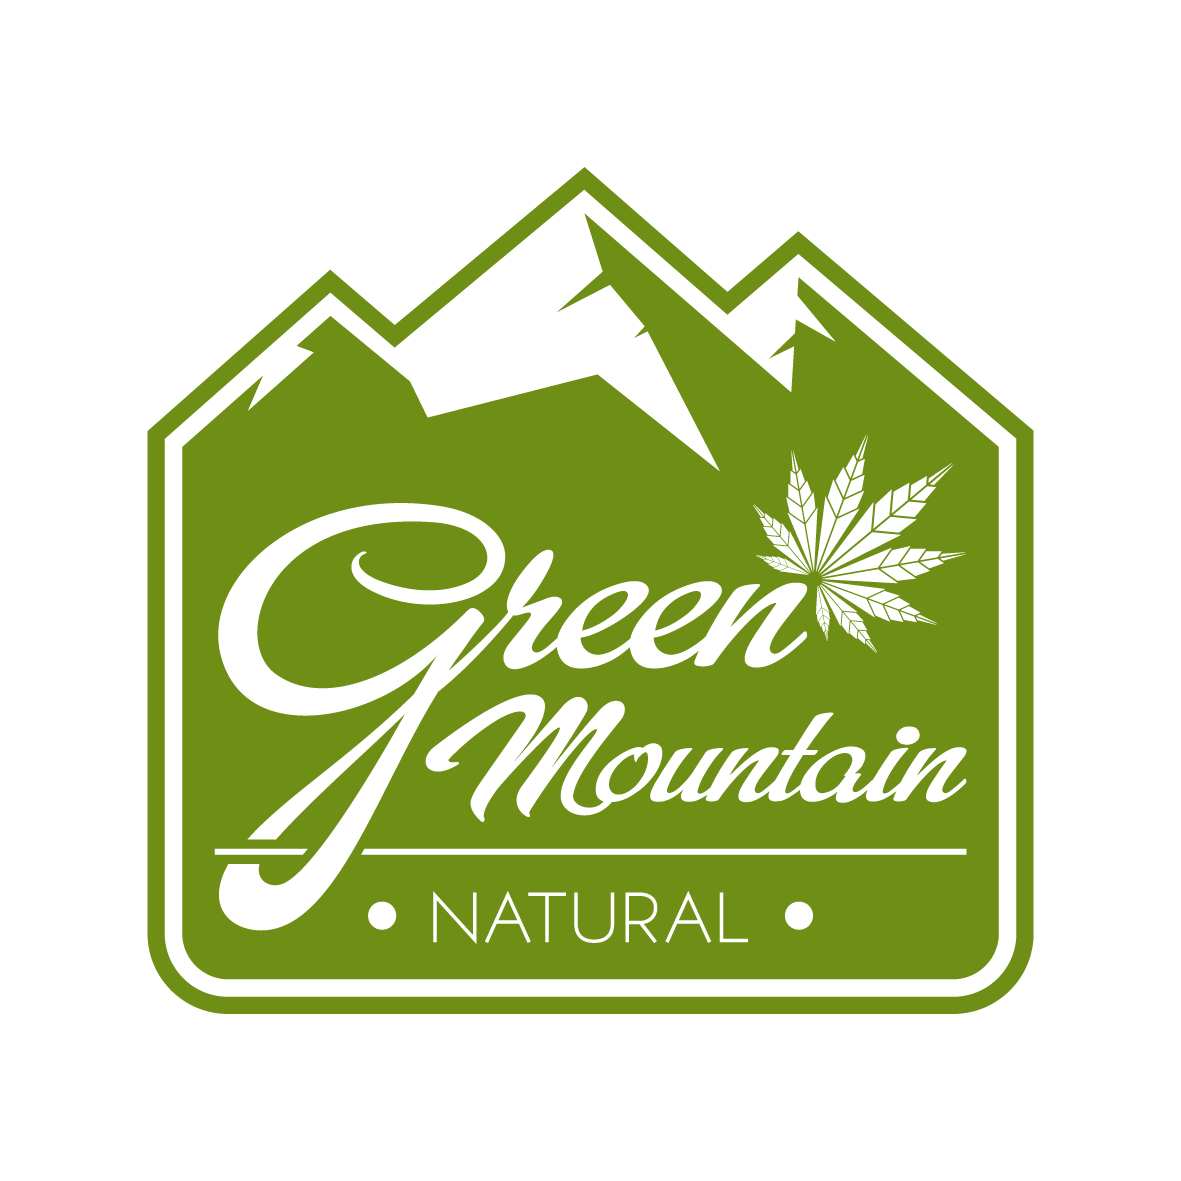 Green Mountain Natural